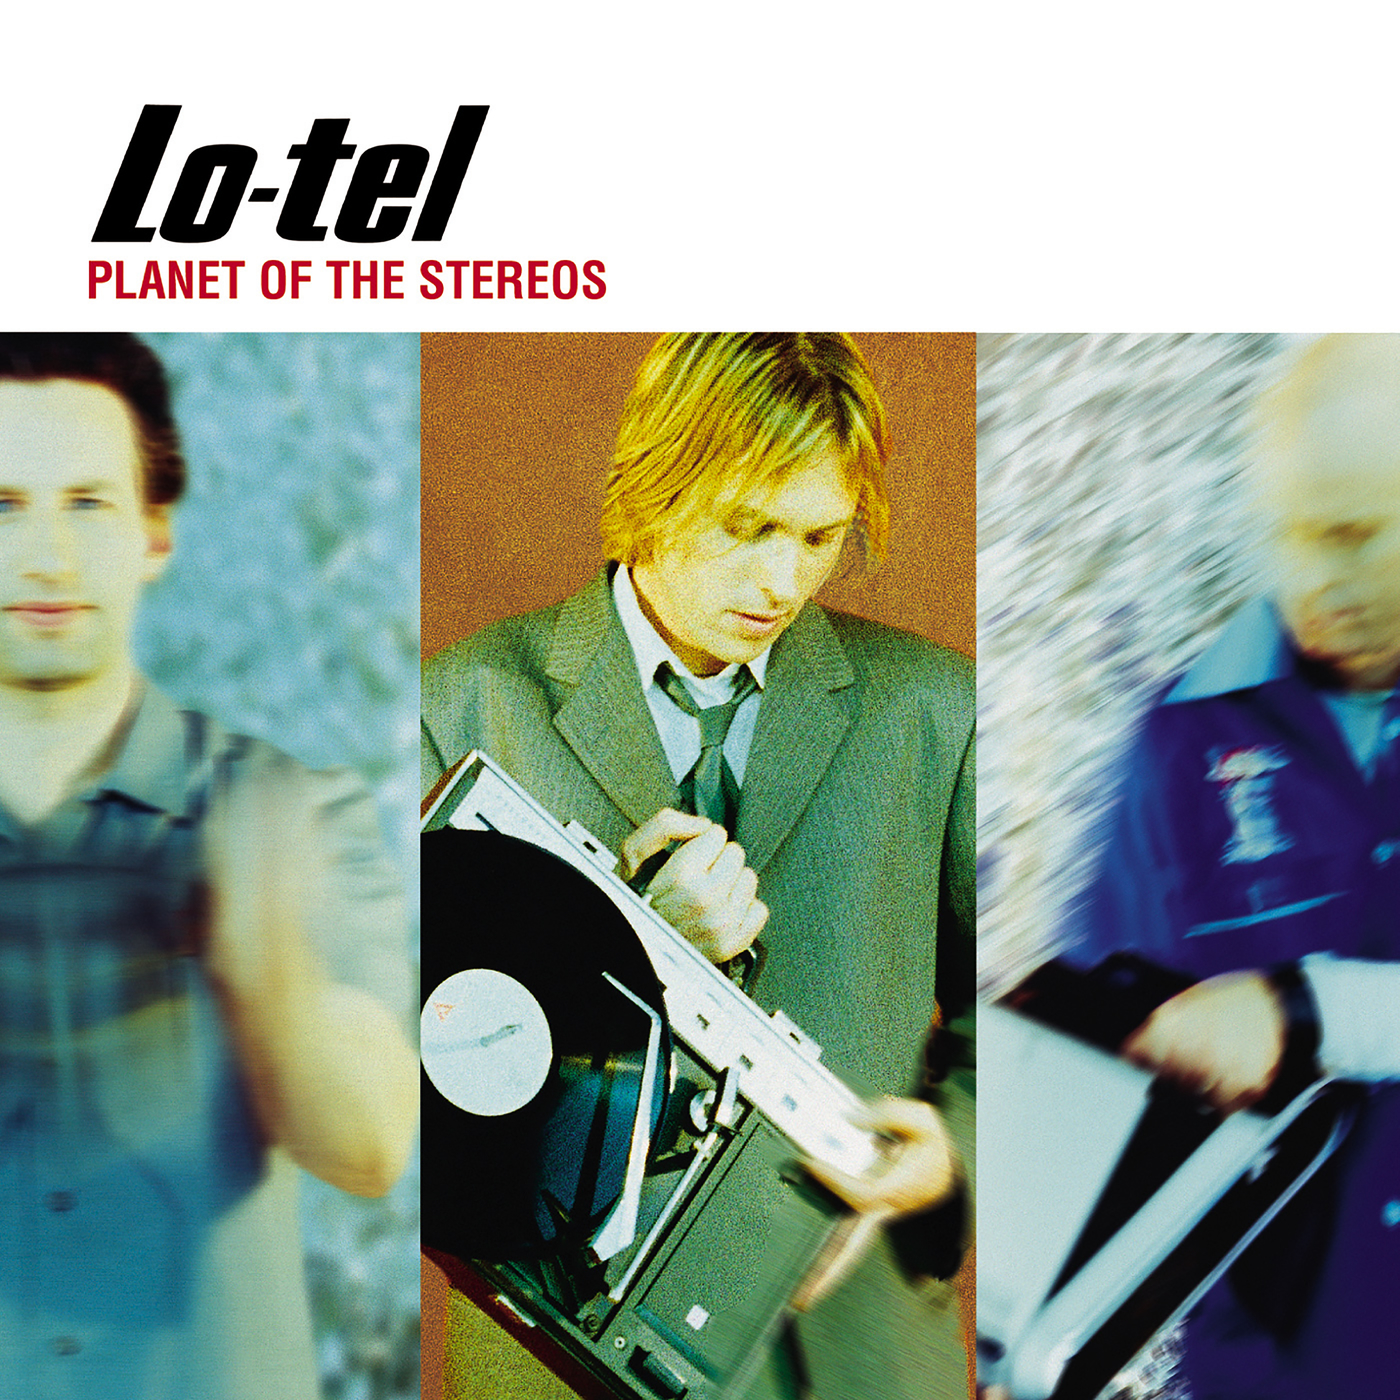 Planet of the Stereos - Lo-tel